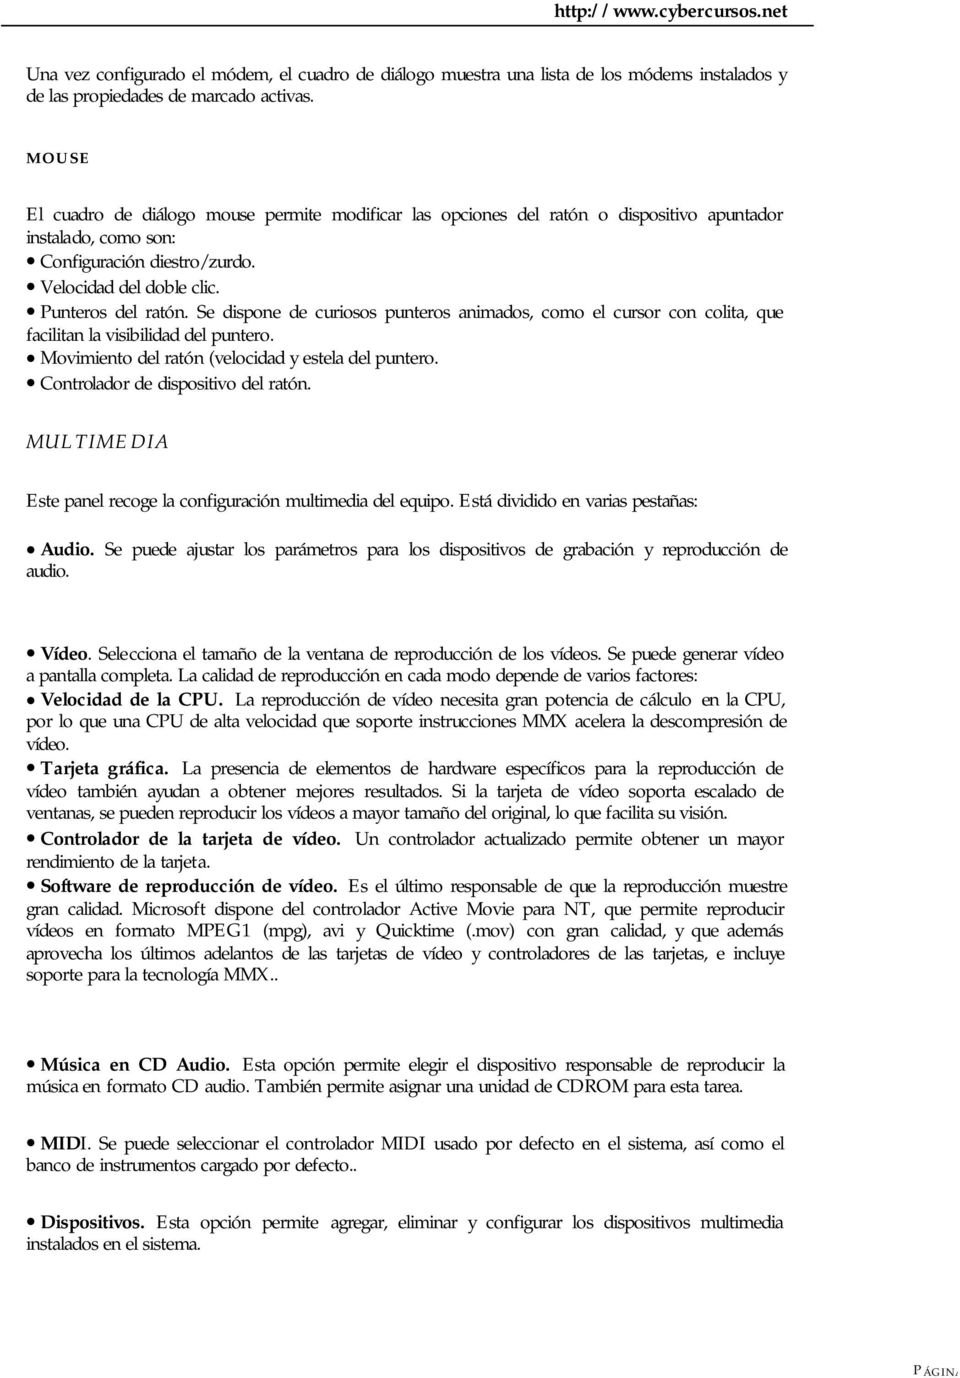 INTRODUCCIÓN AL SISTEMA OPERATIVO WINDOWS NT 4 - PDF